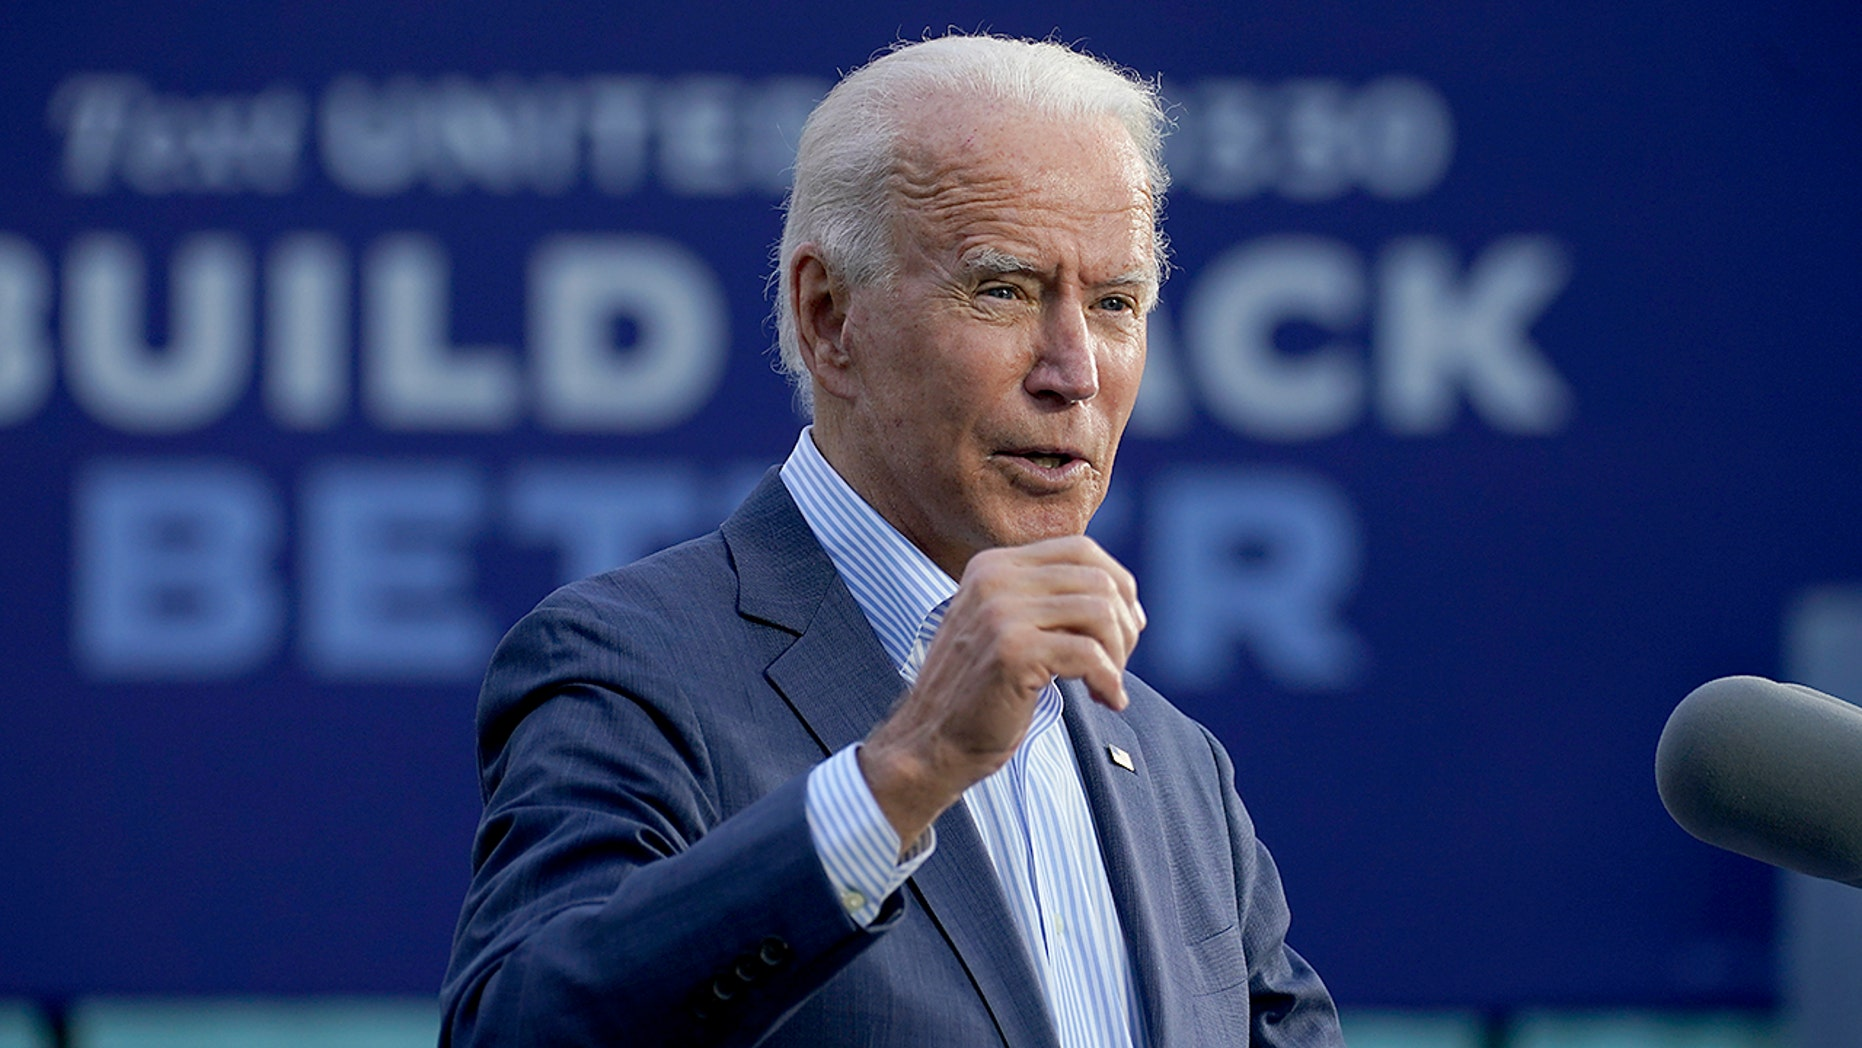 Biden remains mum on packing Supreme Court, but took different stance in 1983